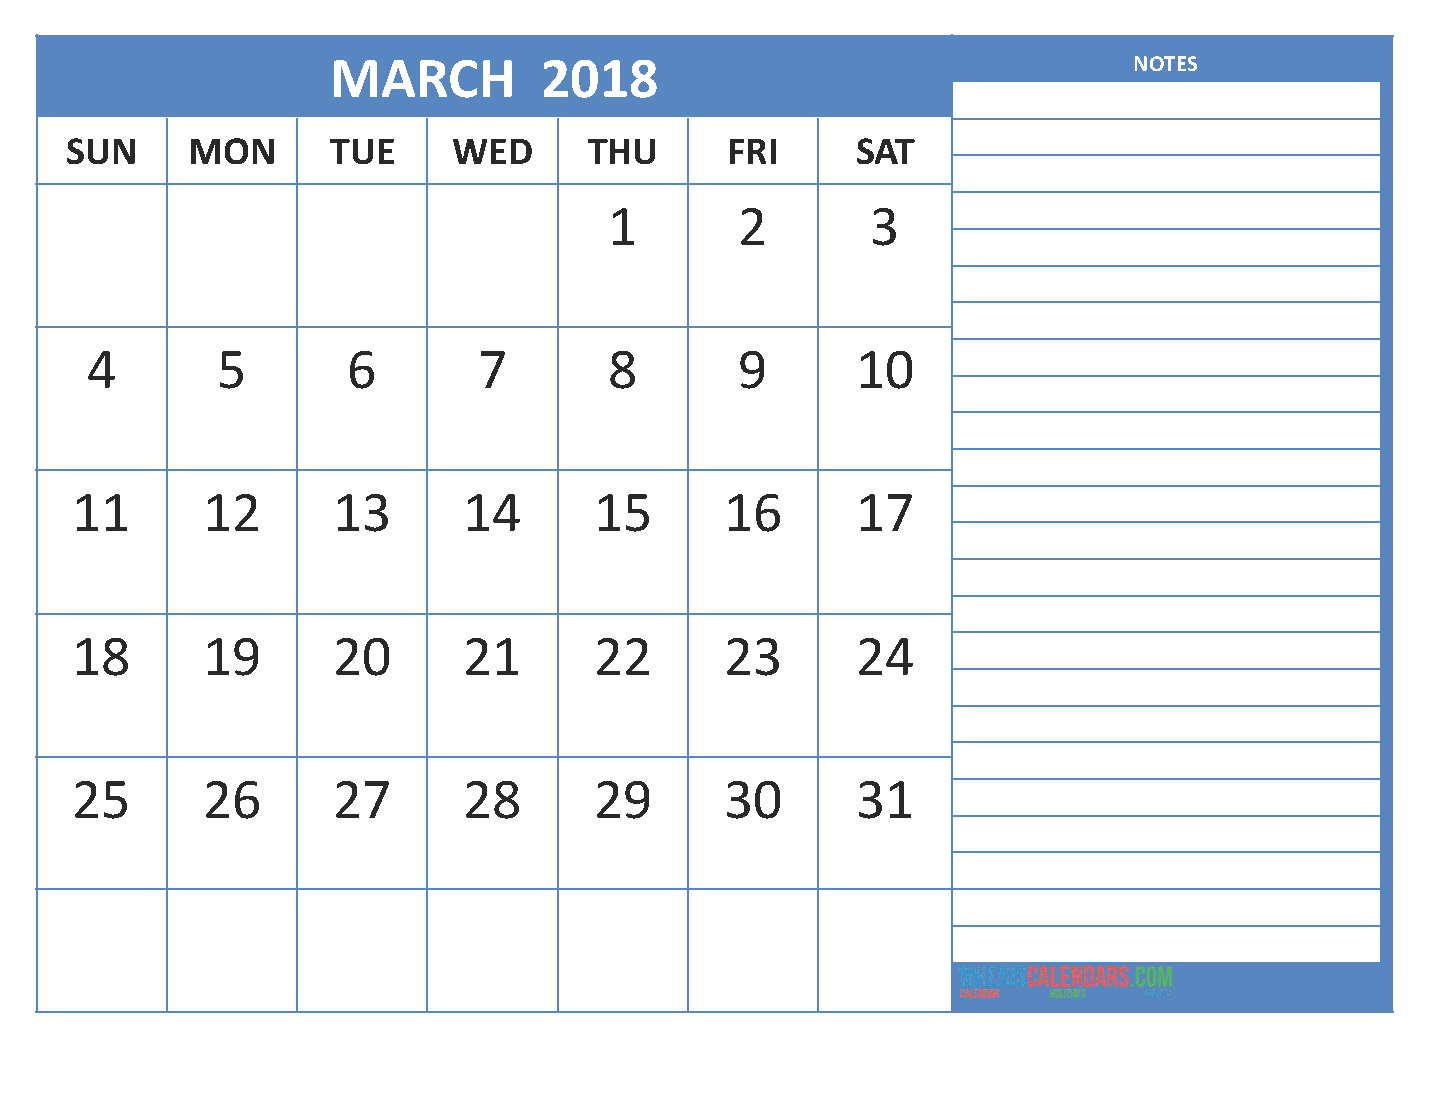 New 2018 free march 2018 printable calendar blank templates march 2018 calendar march calendar 2018 march 2018 calendar printable march 2018 calendar pronofoot35fo Images